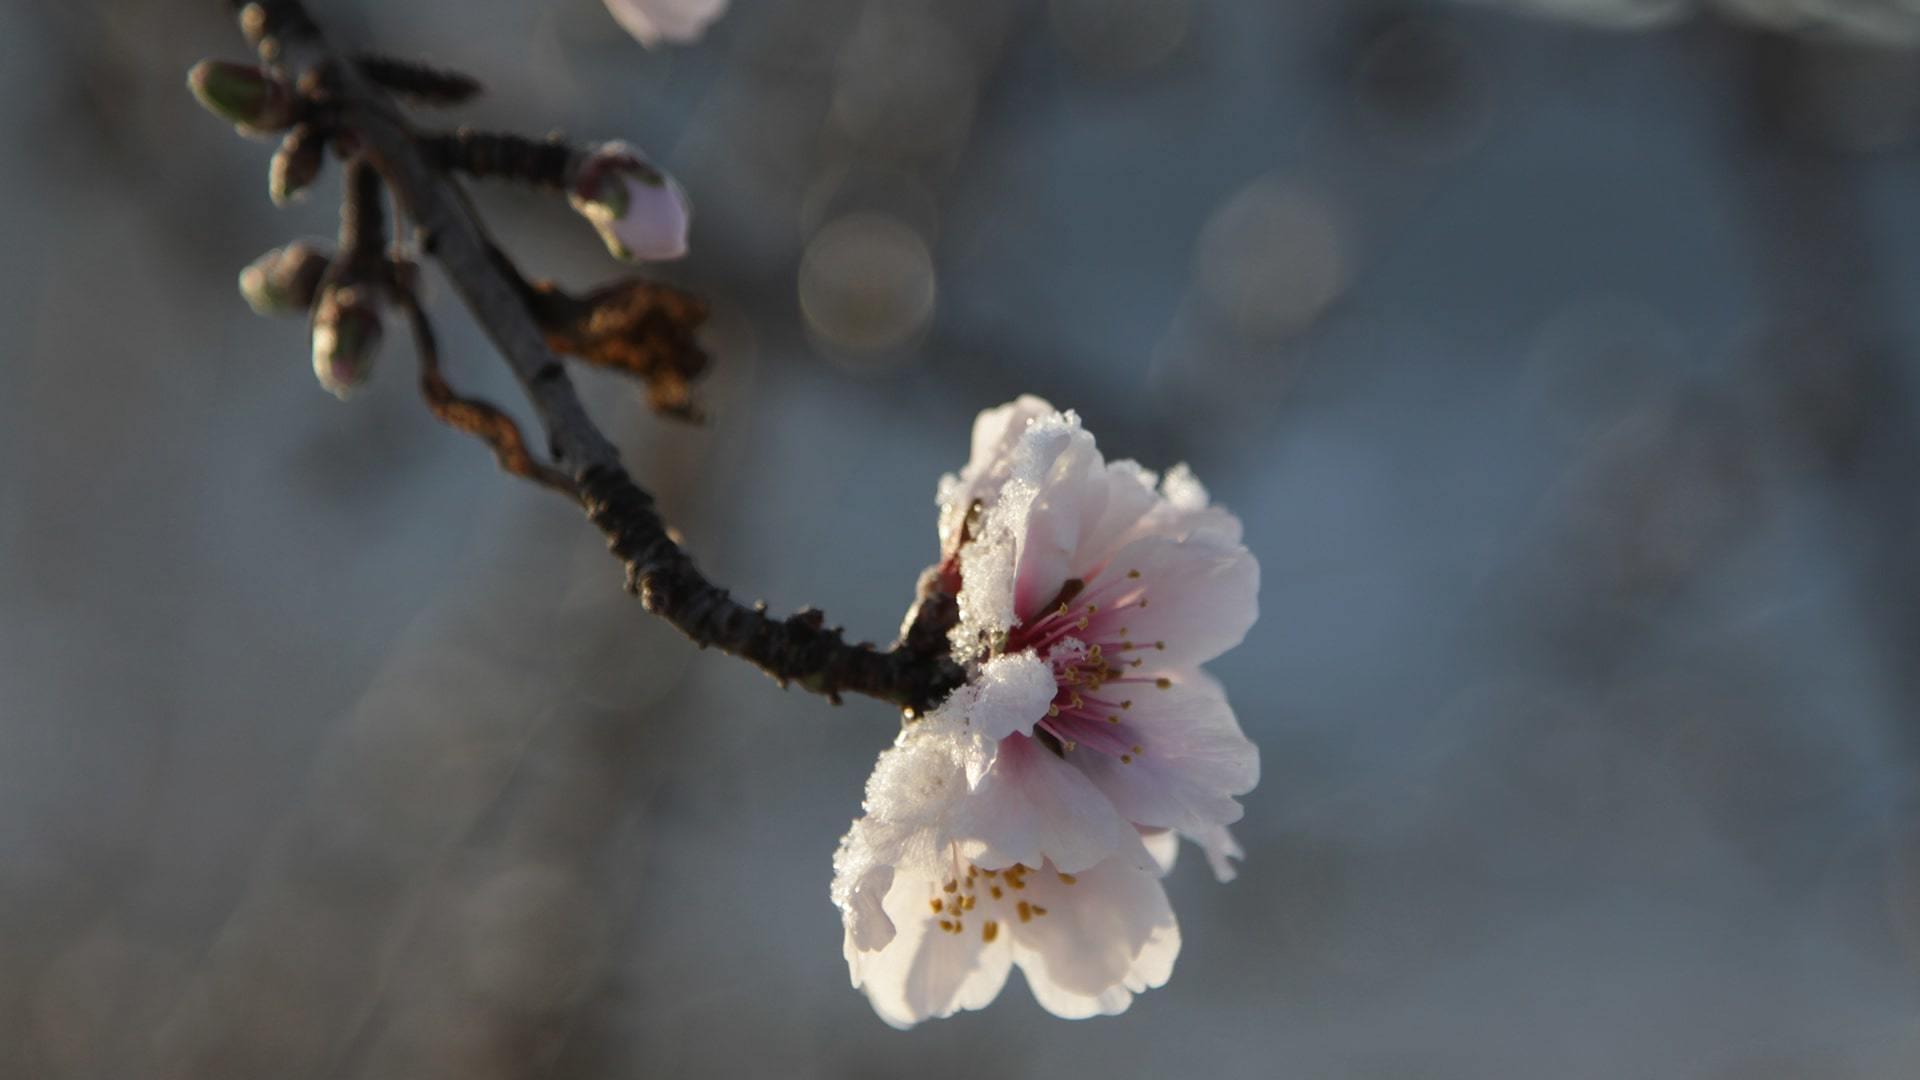 Almond blossom flower with snow by Ulla min